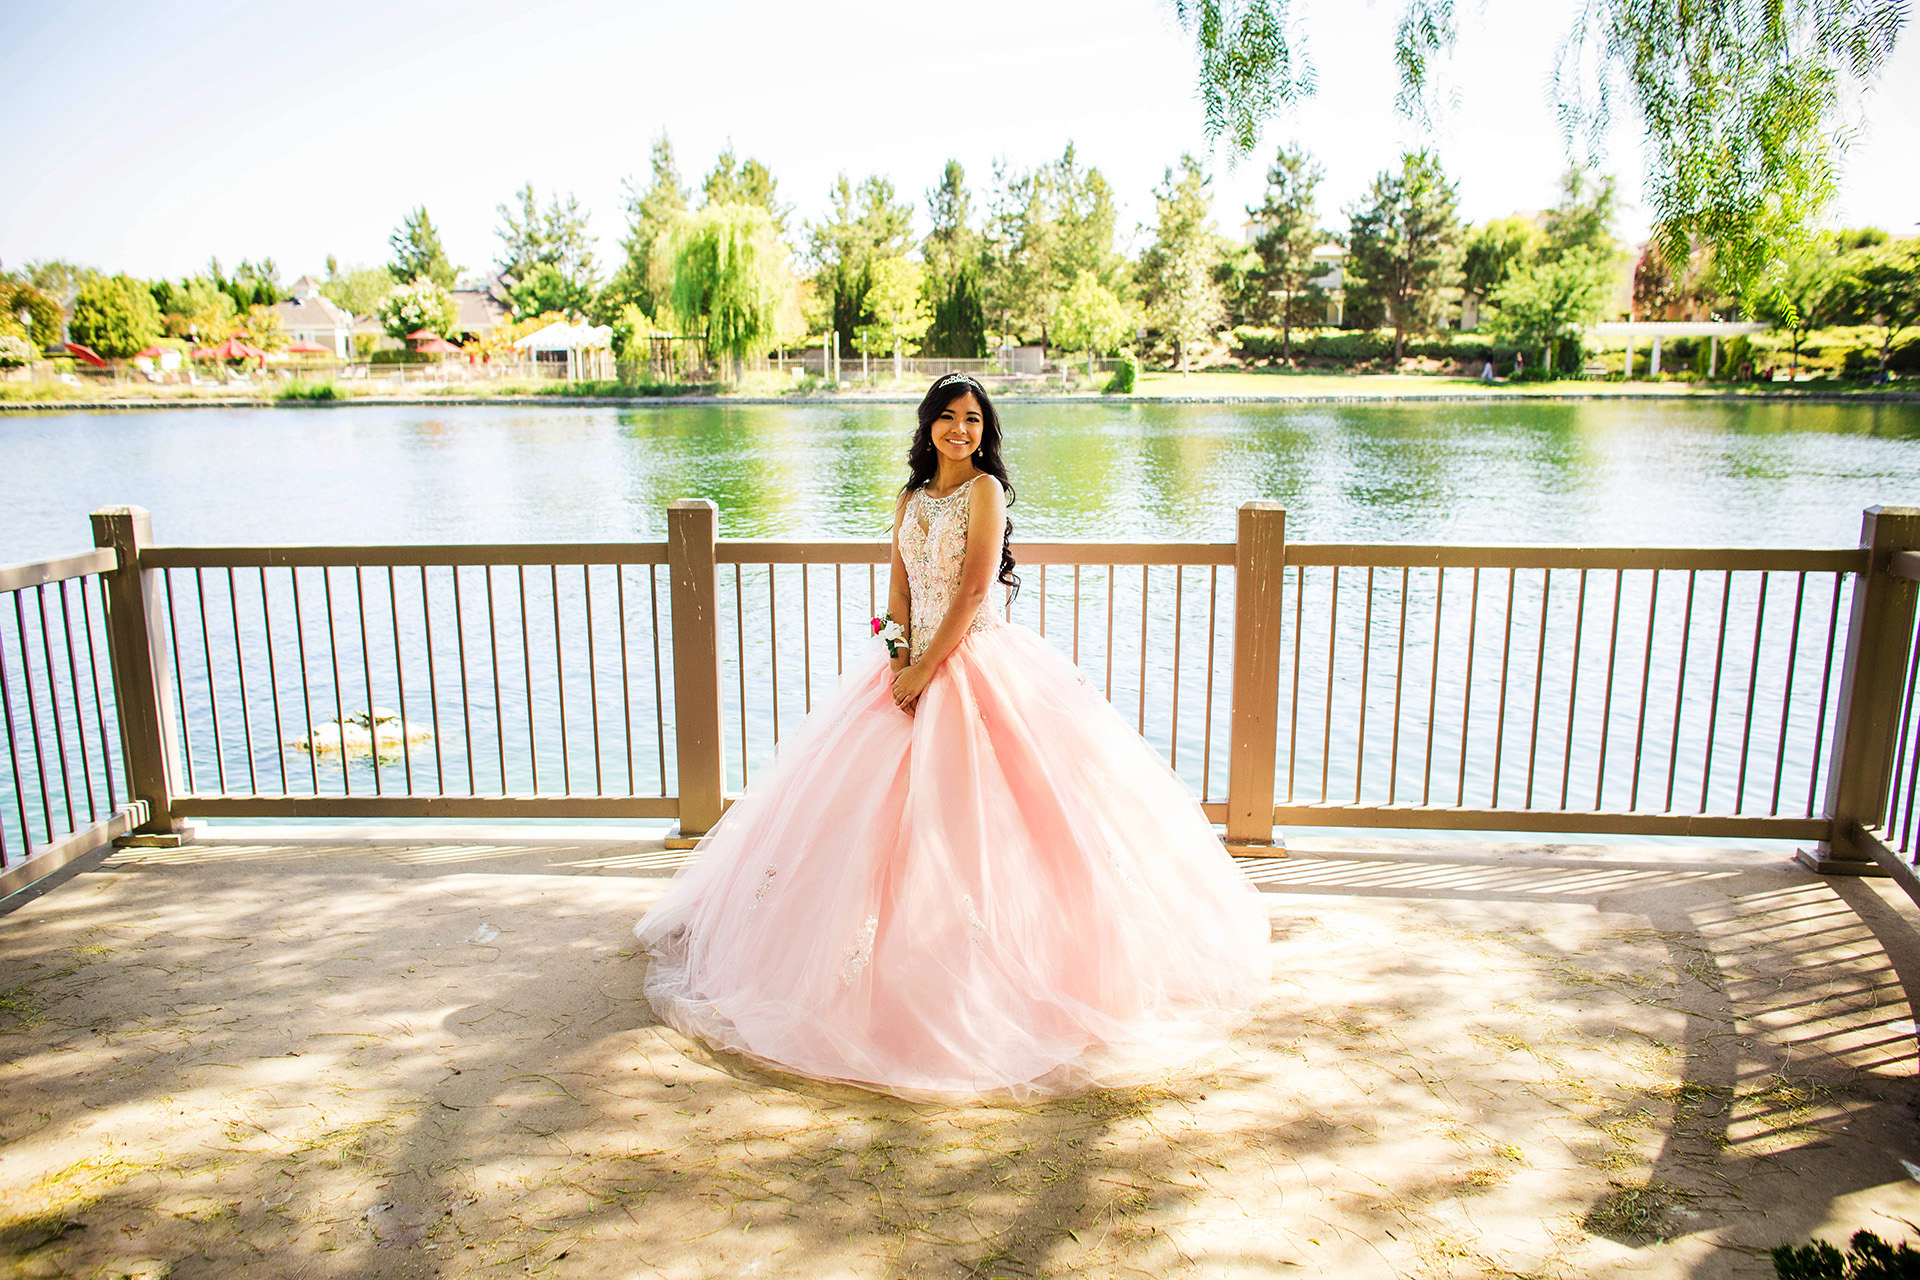 Debutante's 18th birthday captured in Temecula California by Family Photographer Dennis Mock